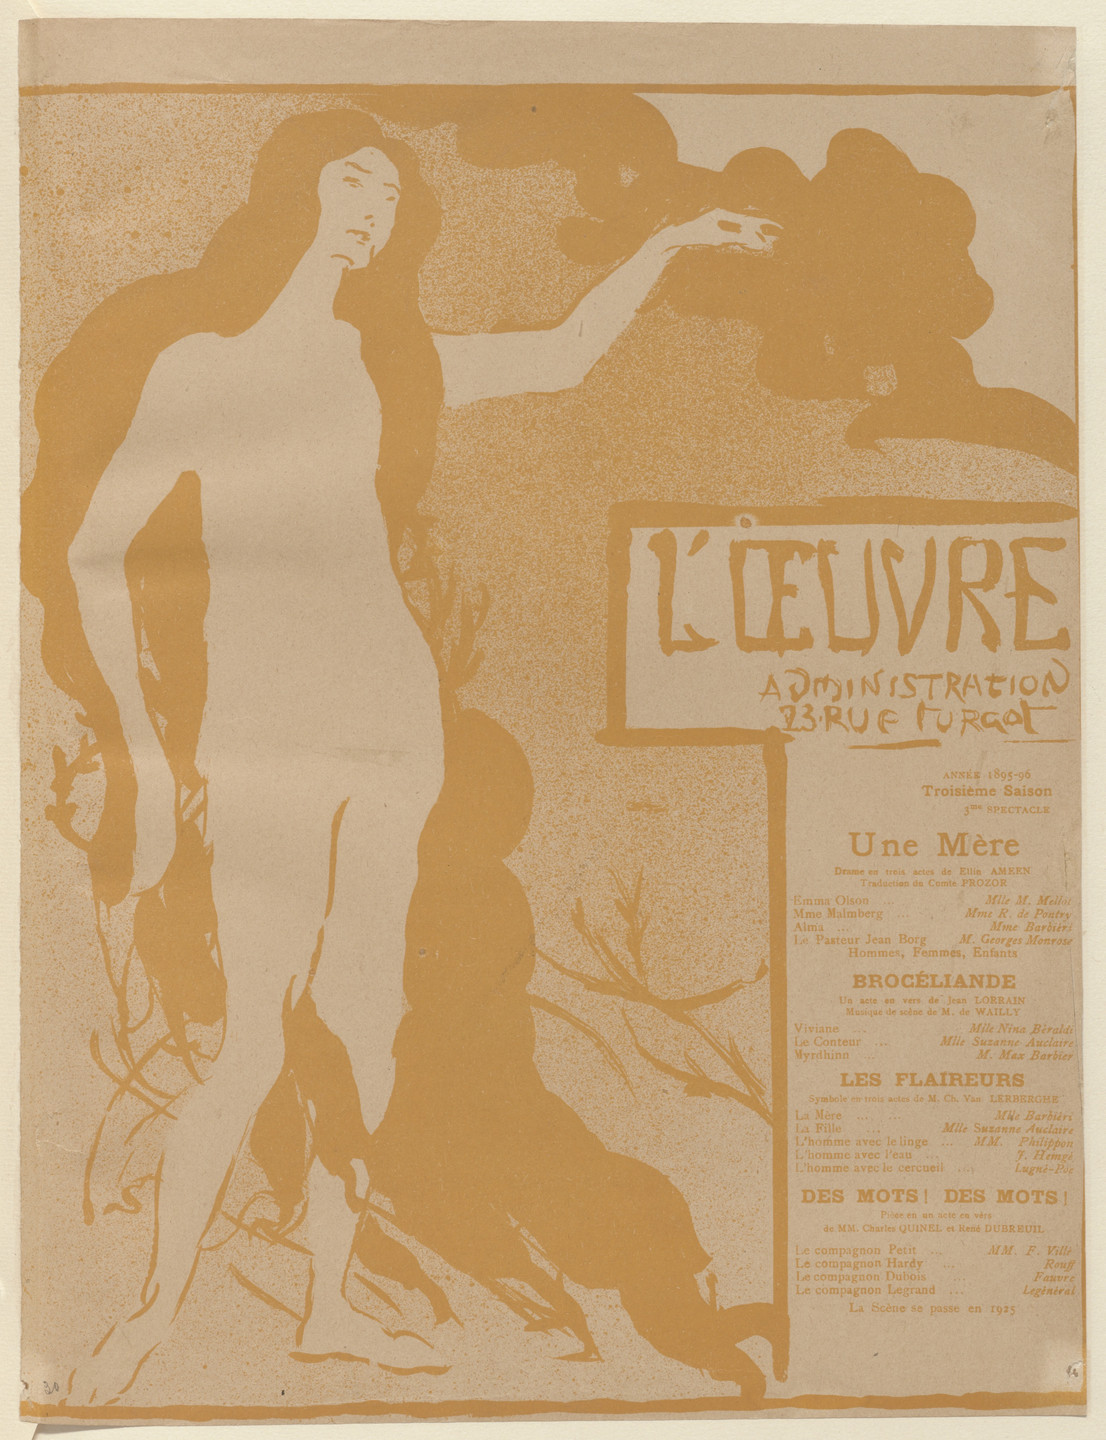 Maxime Dethomas. Program for A Mother (Une Mère), Brocéliande, The Sniffers (Les Flaireurs) and Words! Words! (Des mots! des mots!) from The Beraldi Album of Theatre Programs. 1896